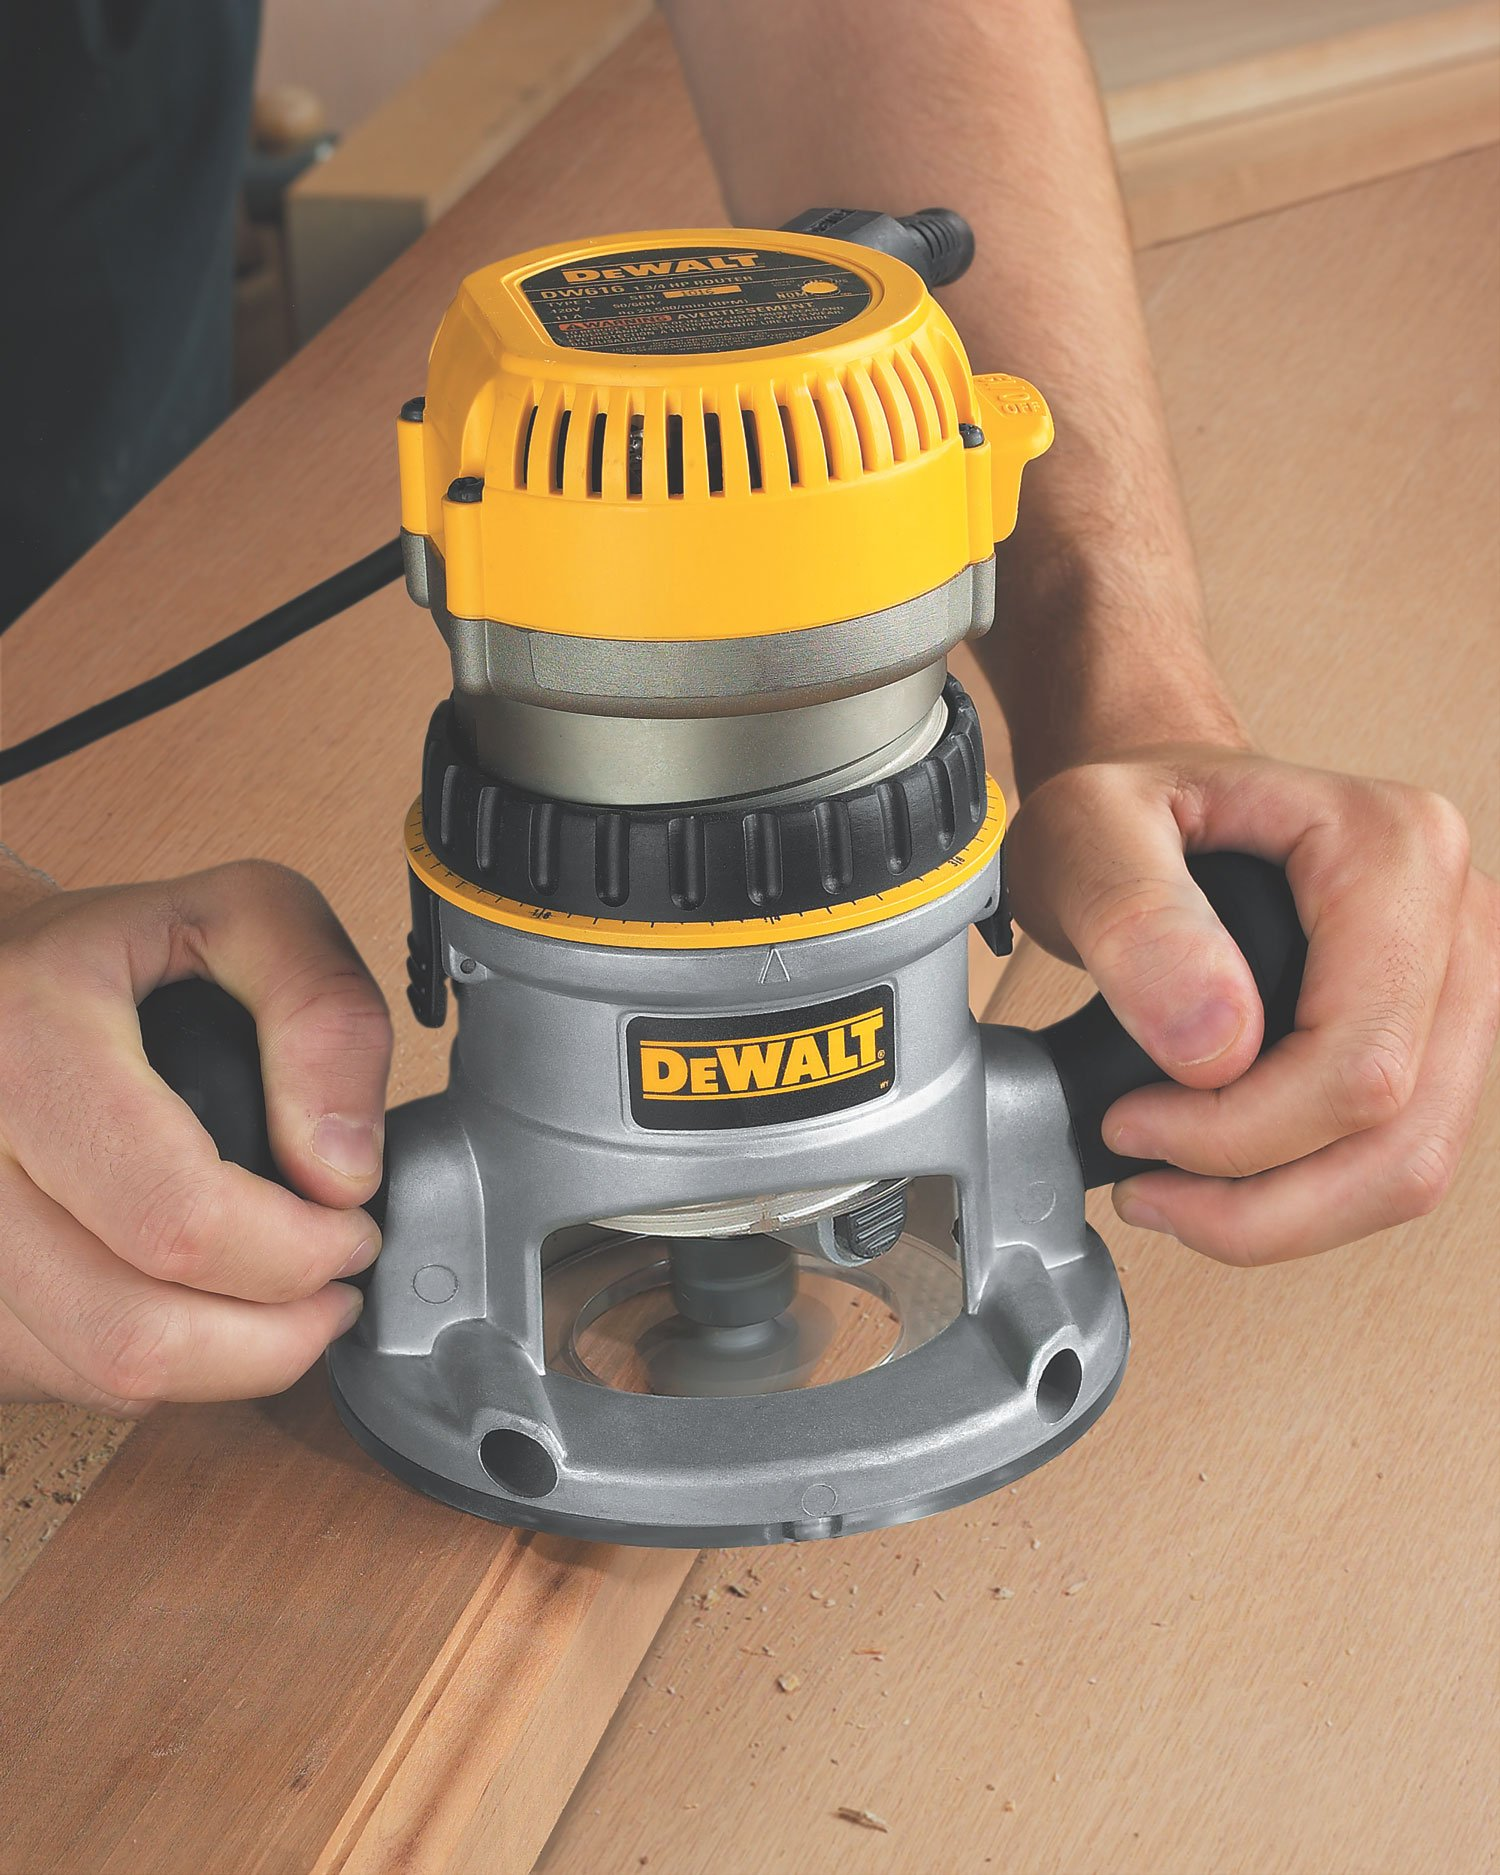 DEWALT DW618 2-1/4 HP Electronic Variable-Speed Fixed-Base Router by DEWALT (Image #3)